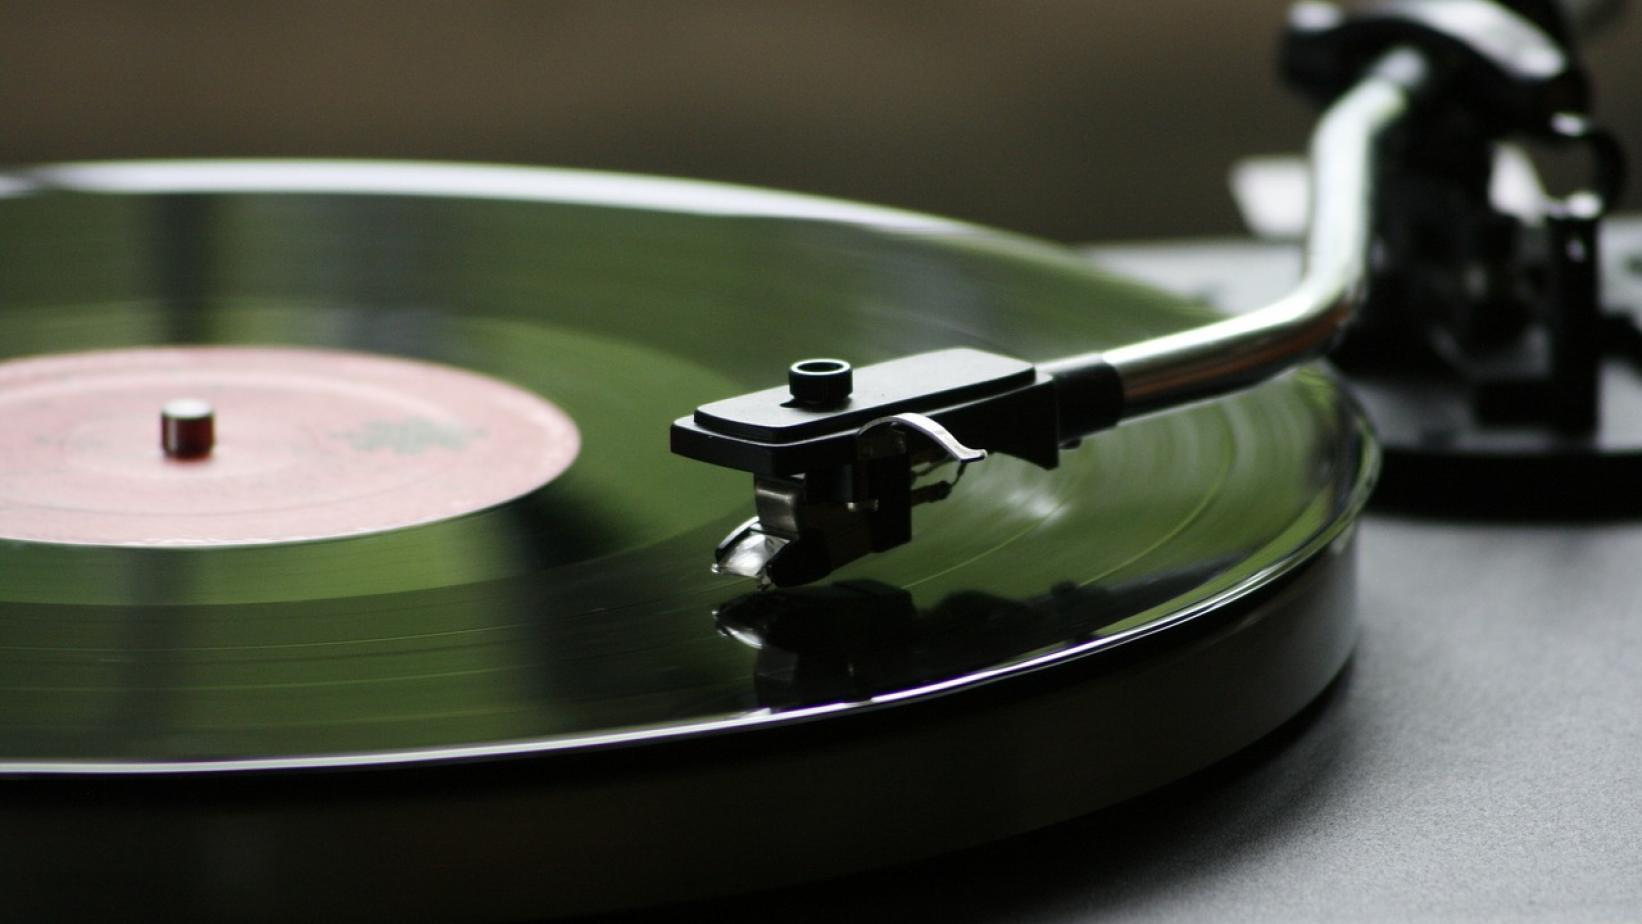 Turntable playing a vinyl record